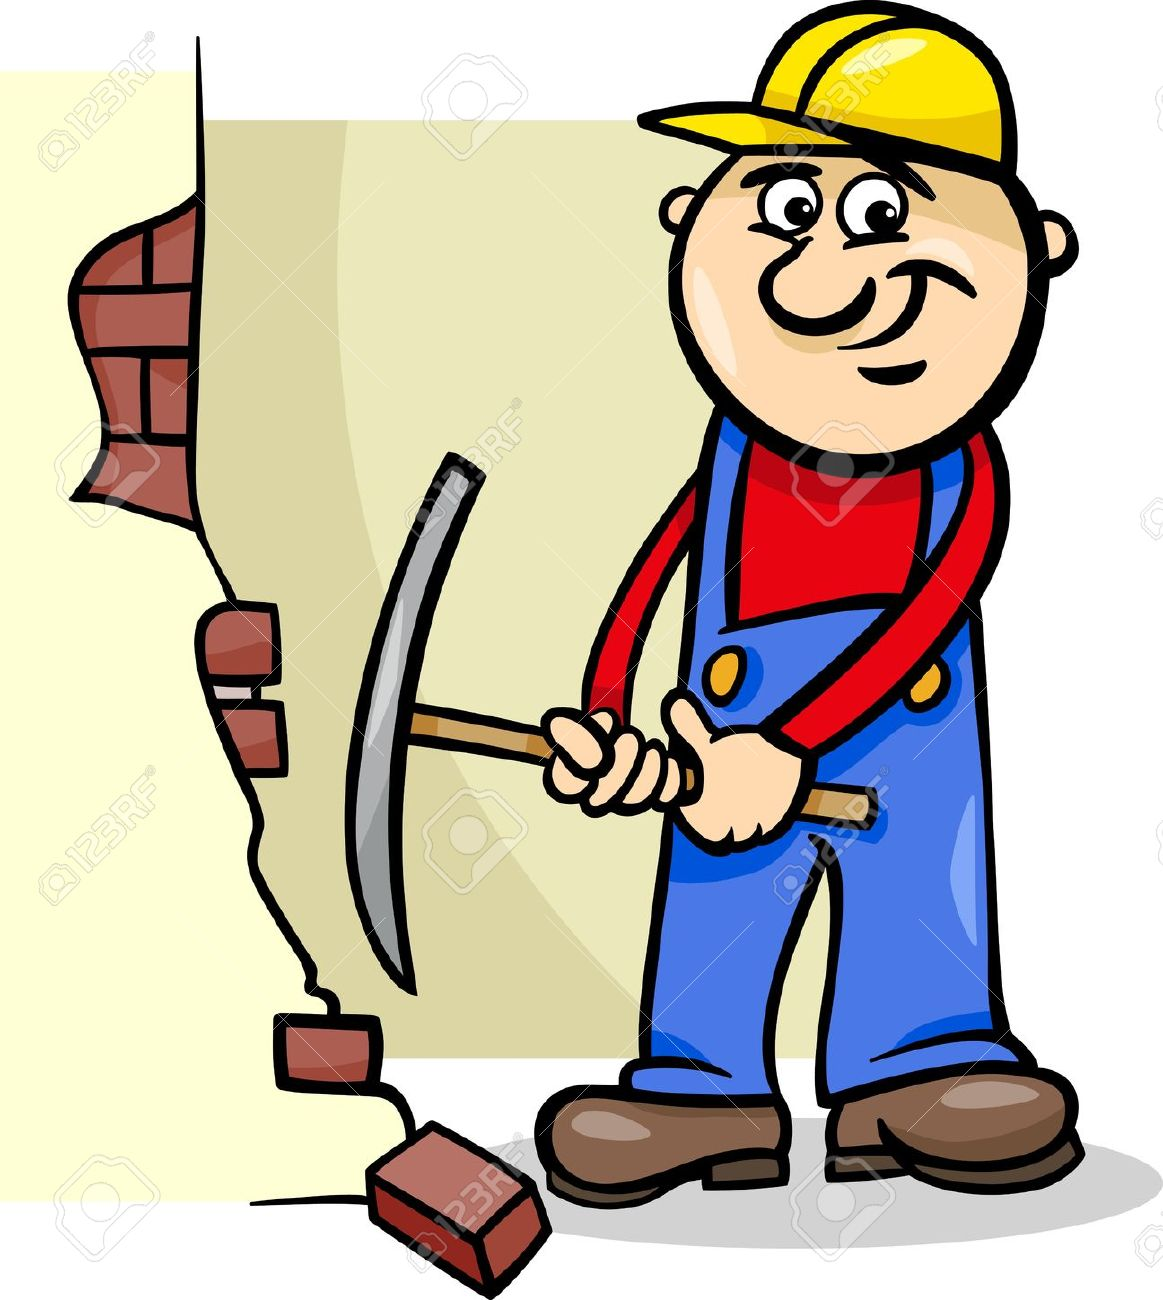 Cartoon Illustration Of Man Worker Or Workman Demolishing Brick.